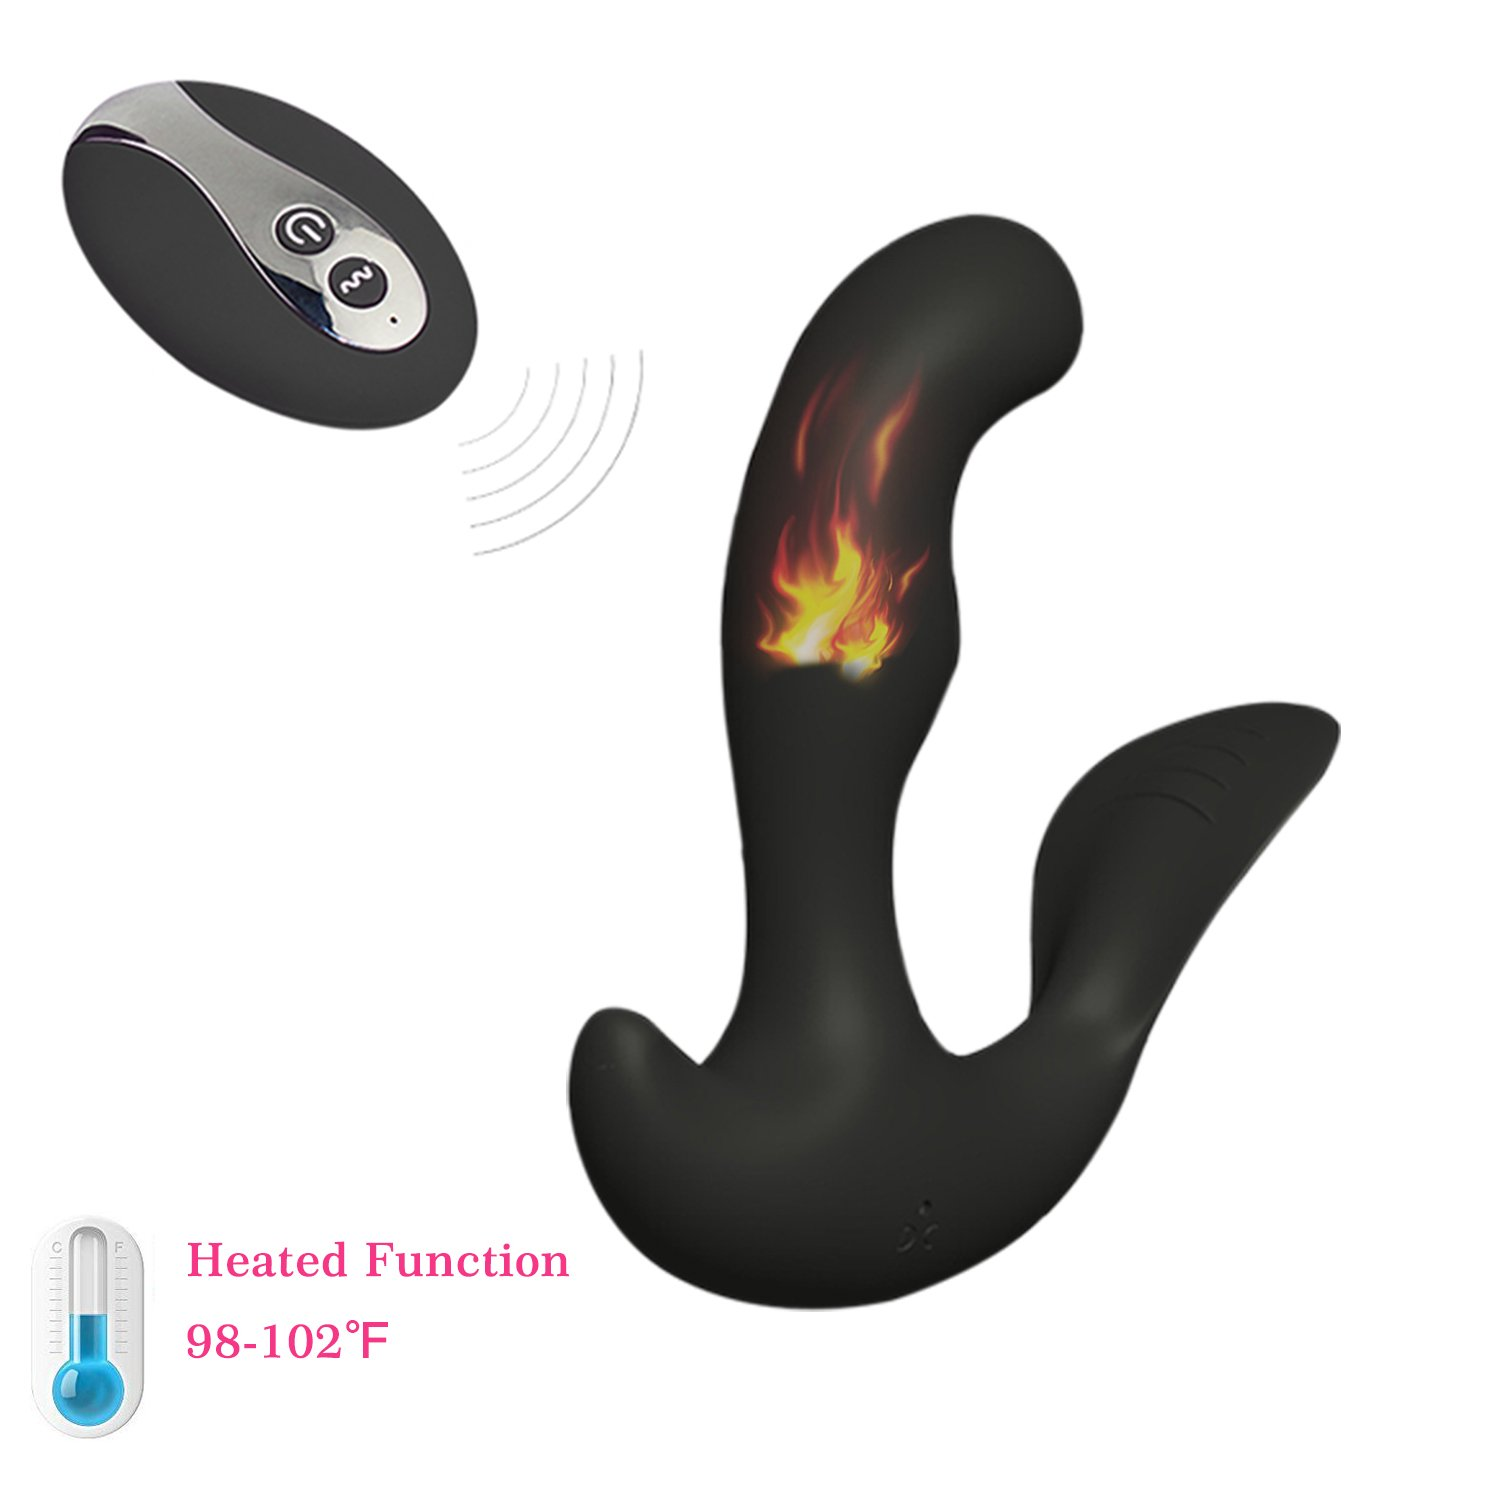 Vibrator Sex Toy for Women Men Anal Plug Wireless Remote Control Personal Wand Massager Powerful Speed Vibrating Male Prostate Massage Heating Rechargeable Waterproof Cordless (Black + Remote Control)